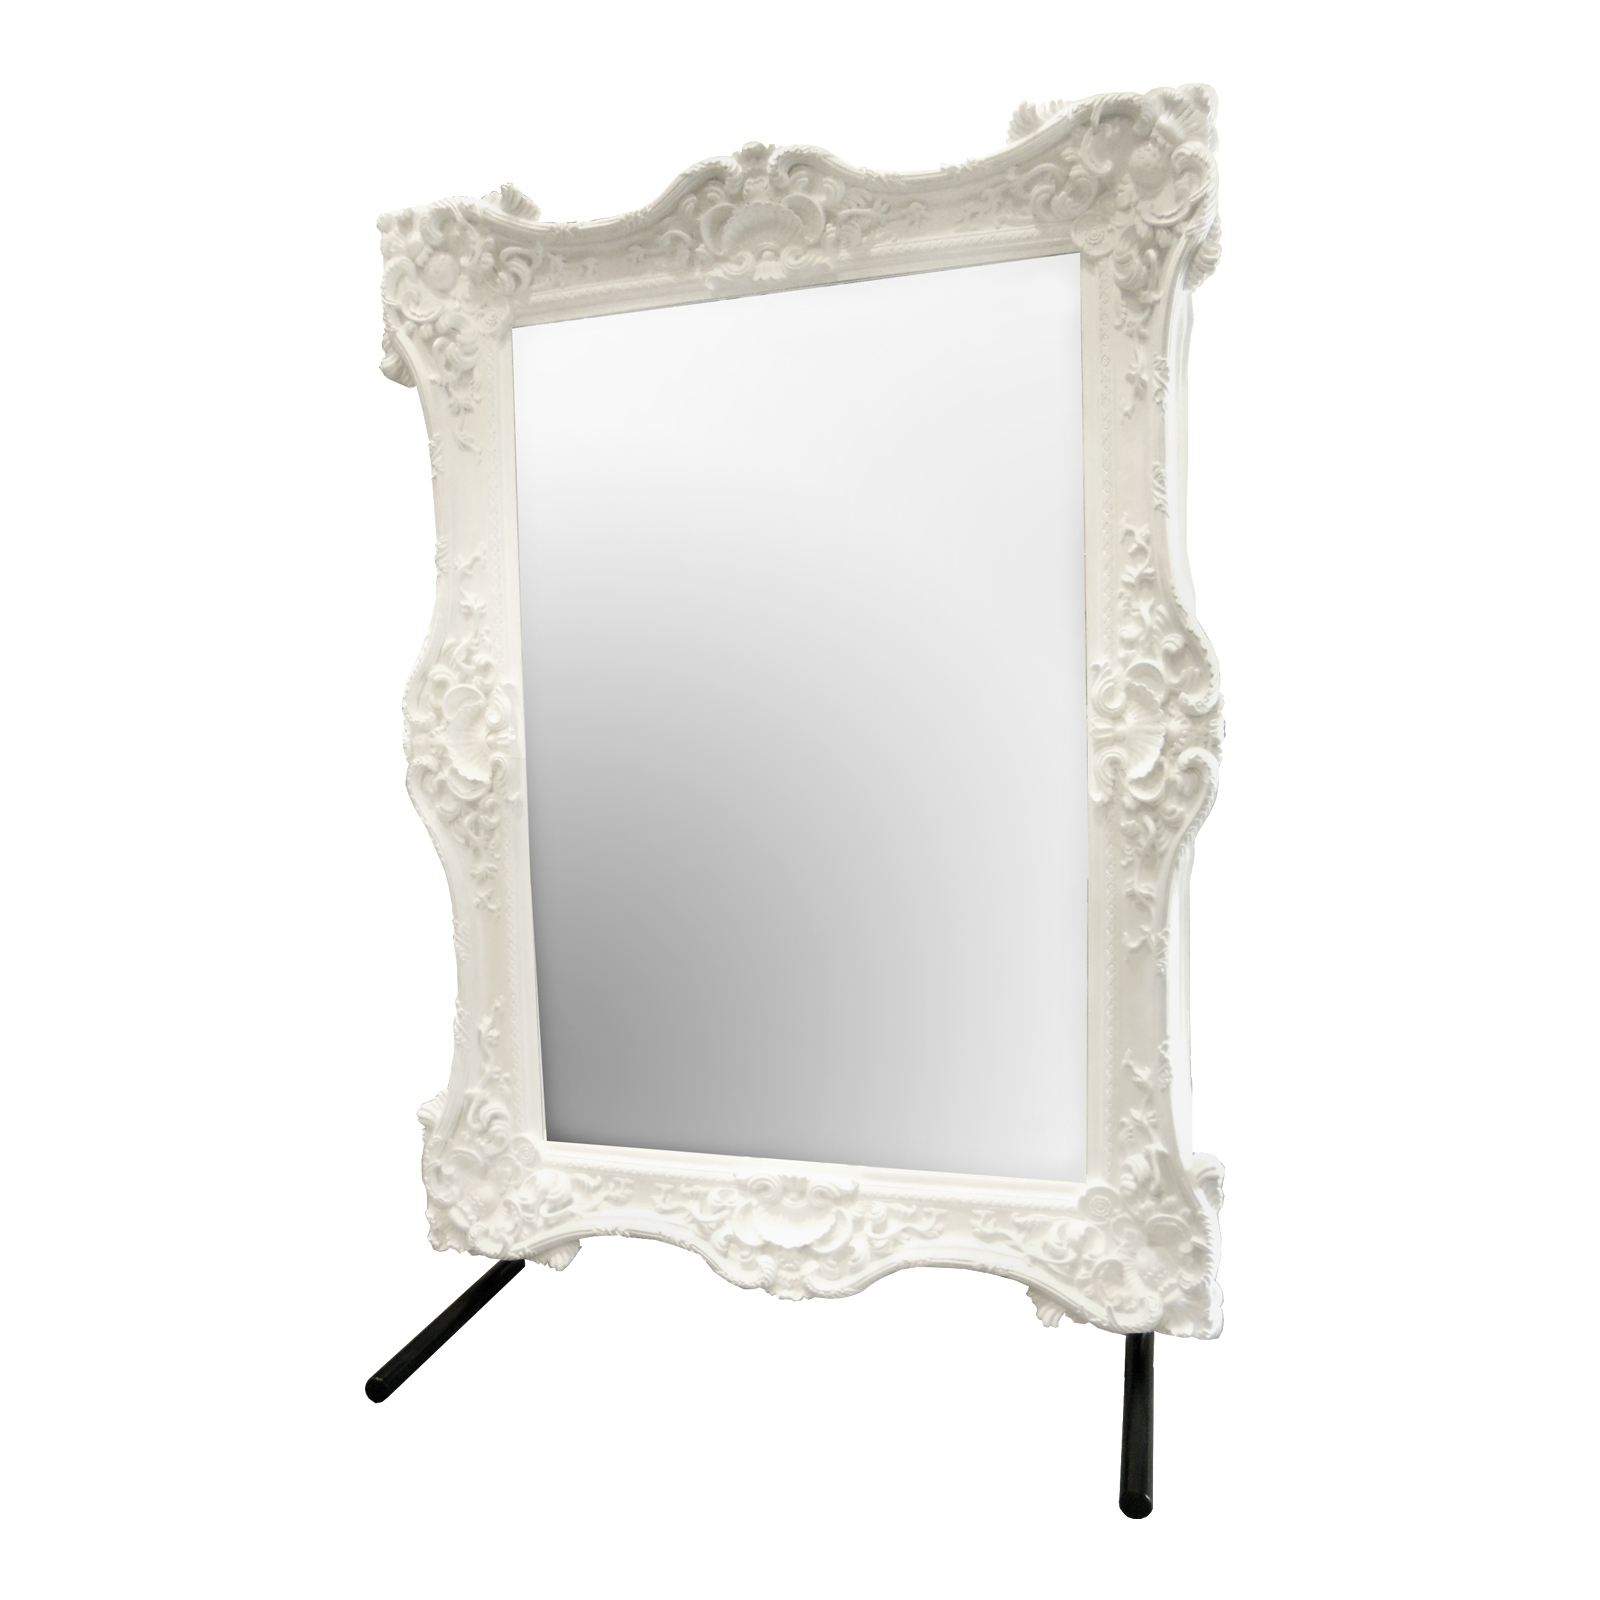 Floor Mirror Rentals Event Furniture Rental Formdecor Inside Baroque White Mirror (Image 6 of 15)